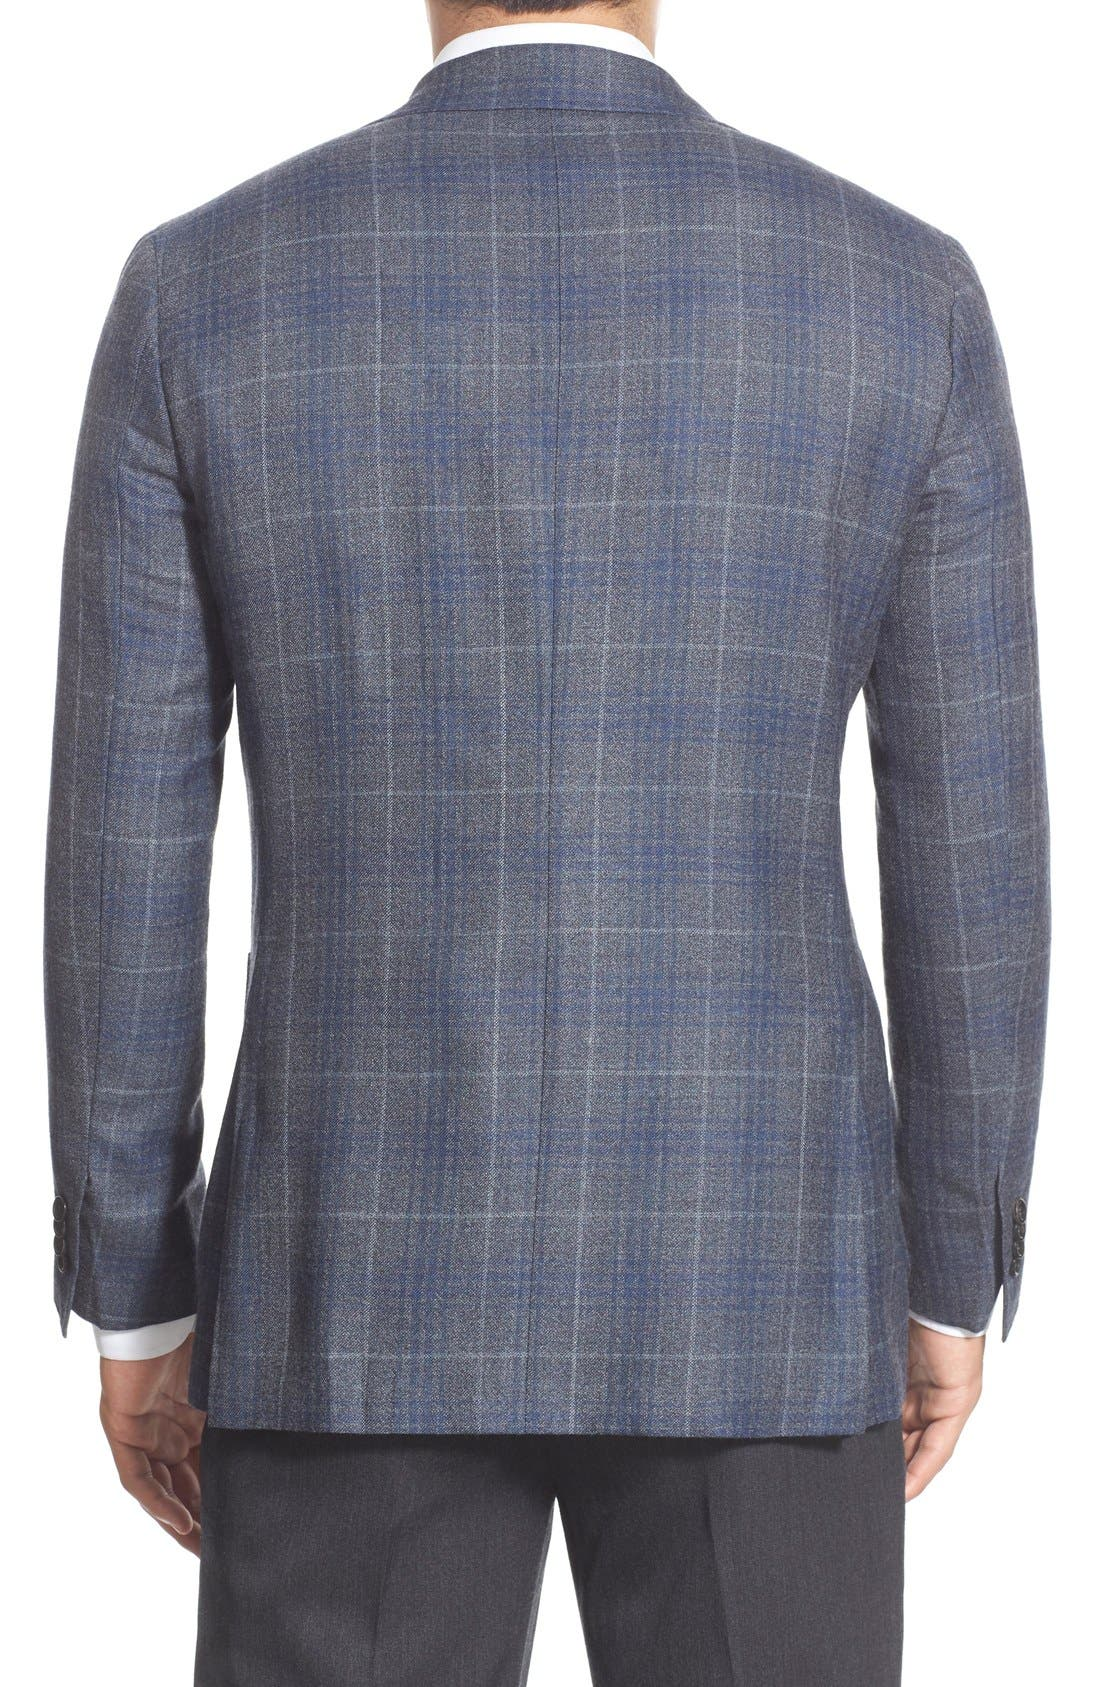 CANALI,                             Classic Fit Plaid Wool Sport Coat,                             Alternate thumbnail 3, color,                             030